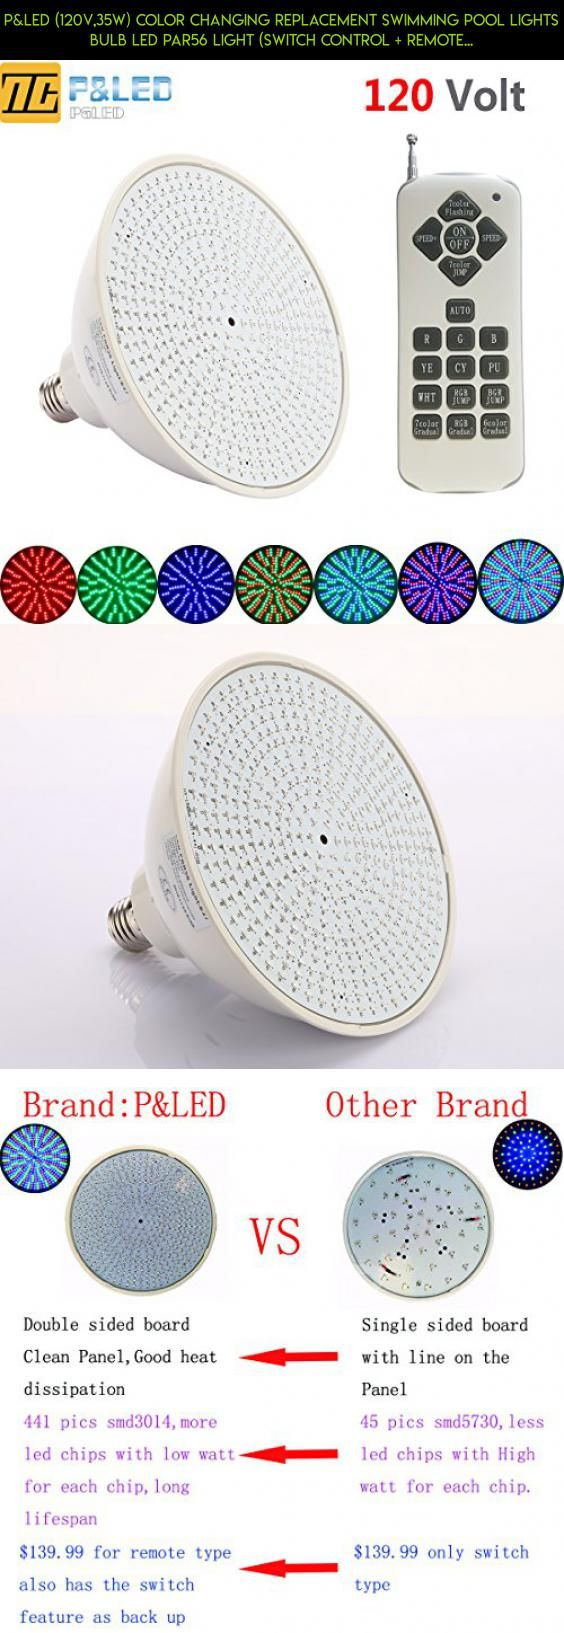 P Led 120v 35w Color Changing Replacement Swimming Pool Lights Bulb Led Par56 Light Switch Control Remote Swimming Pool Lights Pool Lights Swimming Pools